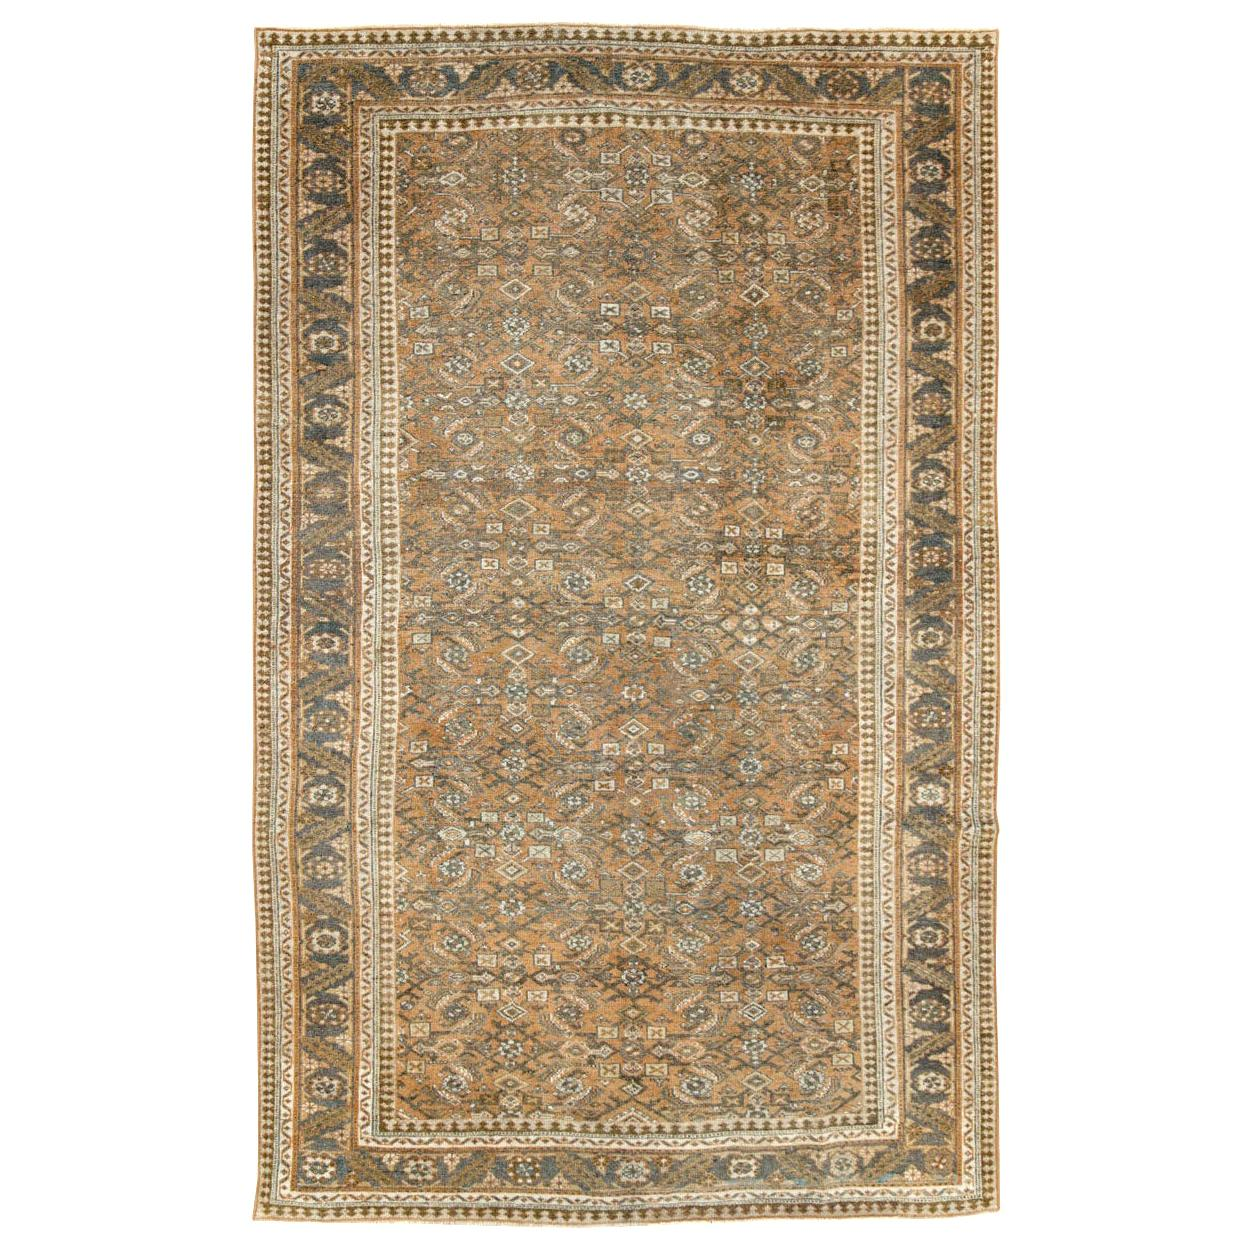 Rustic Mid-20th Century Handmade Persian Mahal Room Size Accent Rug